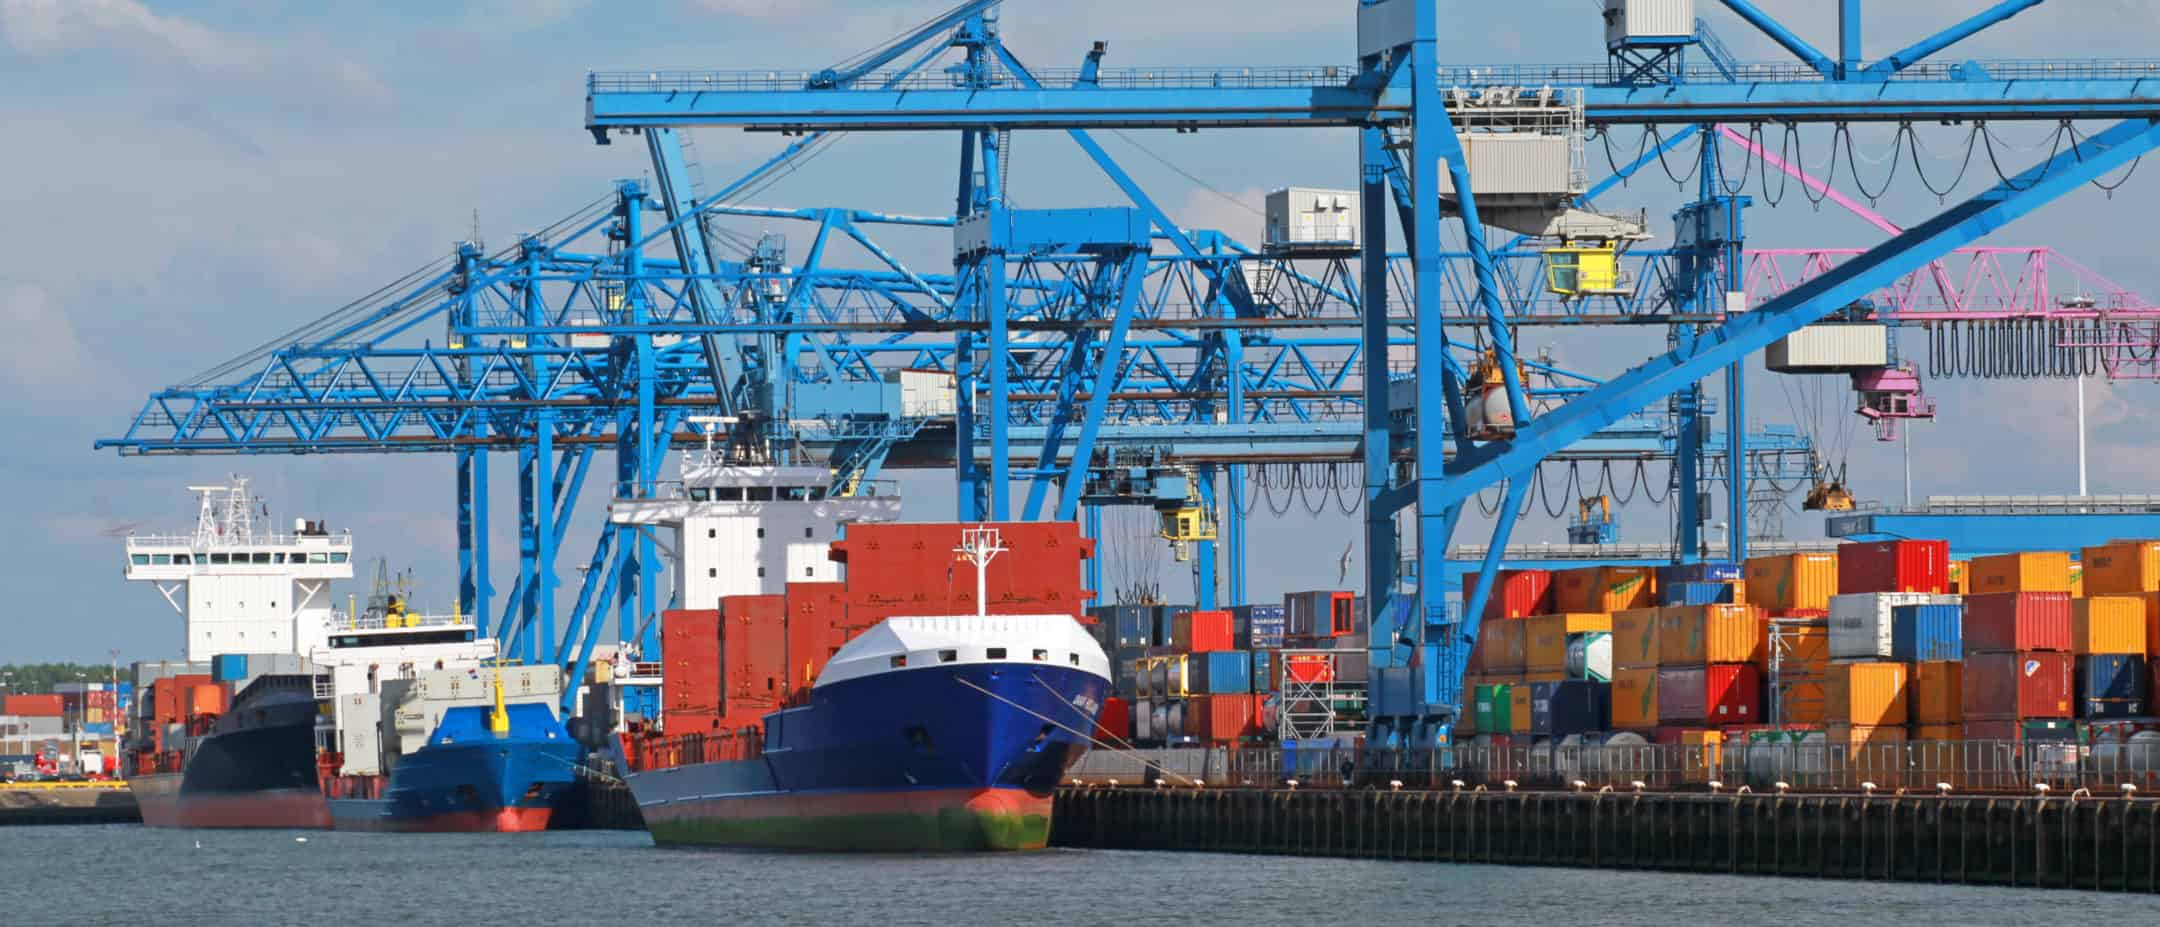 AECOM performed an environmental safety and due diligence assessment for a container terminal at the Port of Rotterdam